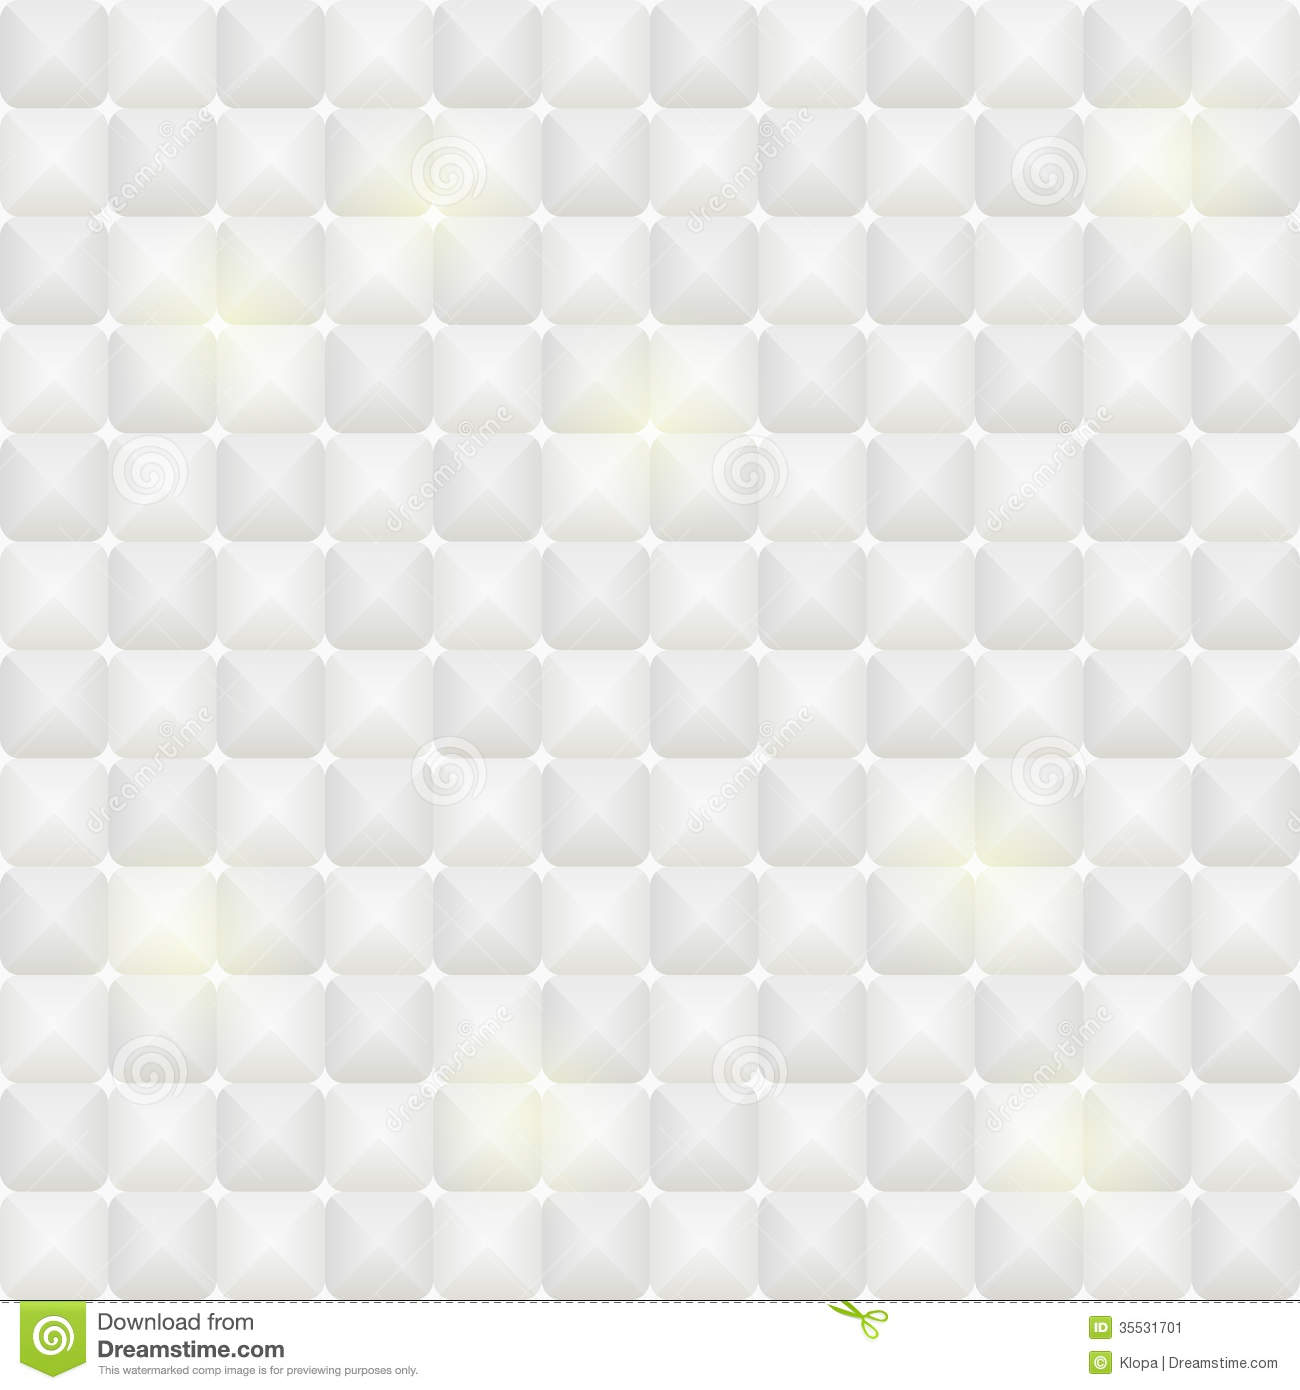 White Tile Seamless Pattern With Square Elements Stock